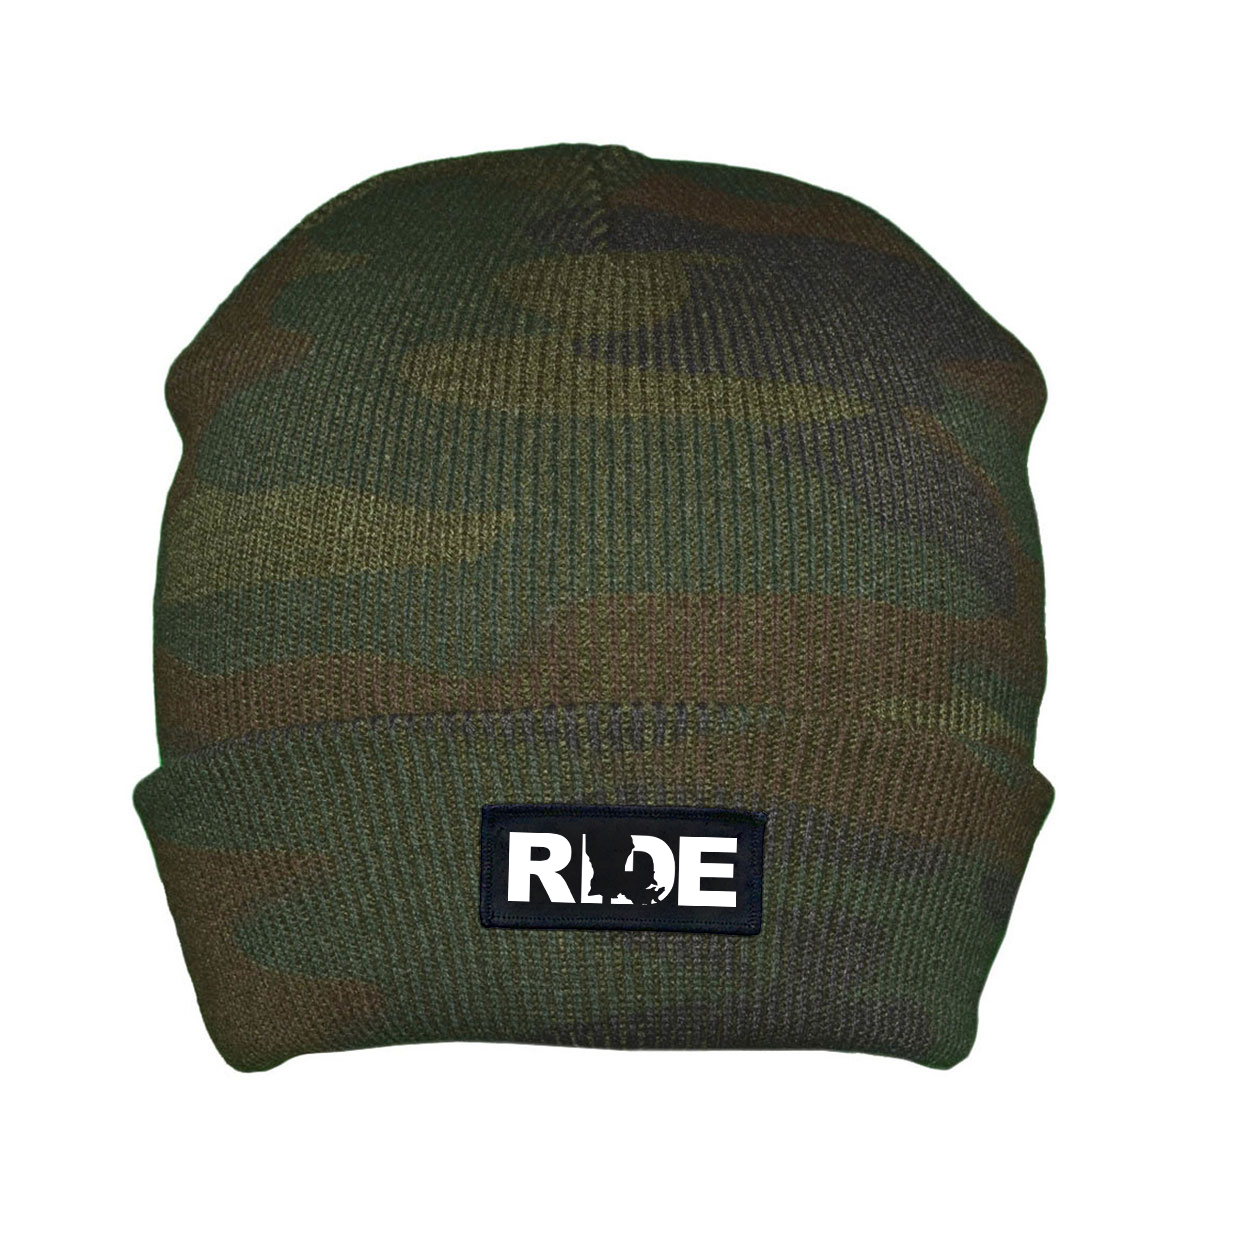 Ride Louisiana Night Out Woven Patch Roll Up Skully Beanie Camo (White Logo)